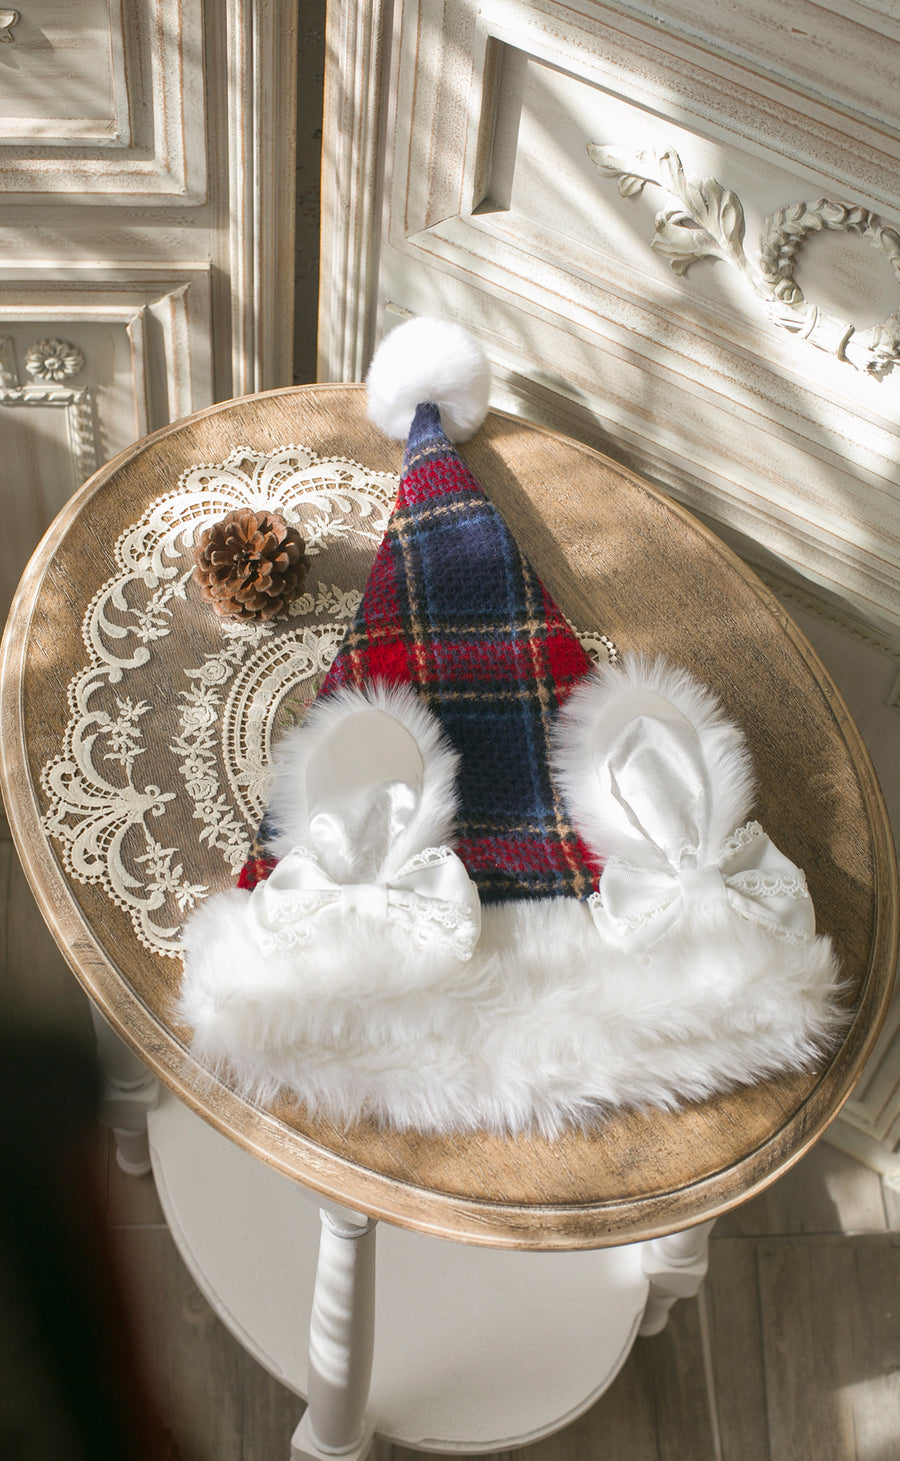 [2020 Version] The Sparkle Time Of The Year - Bun Bun Ear Pom Pom Faux Fur Christmas Hat